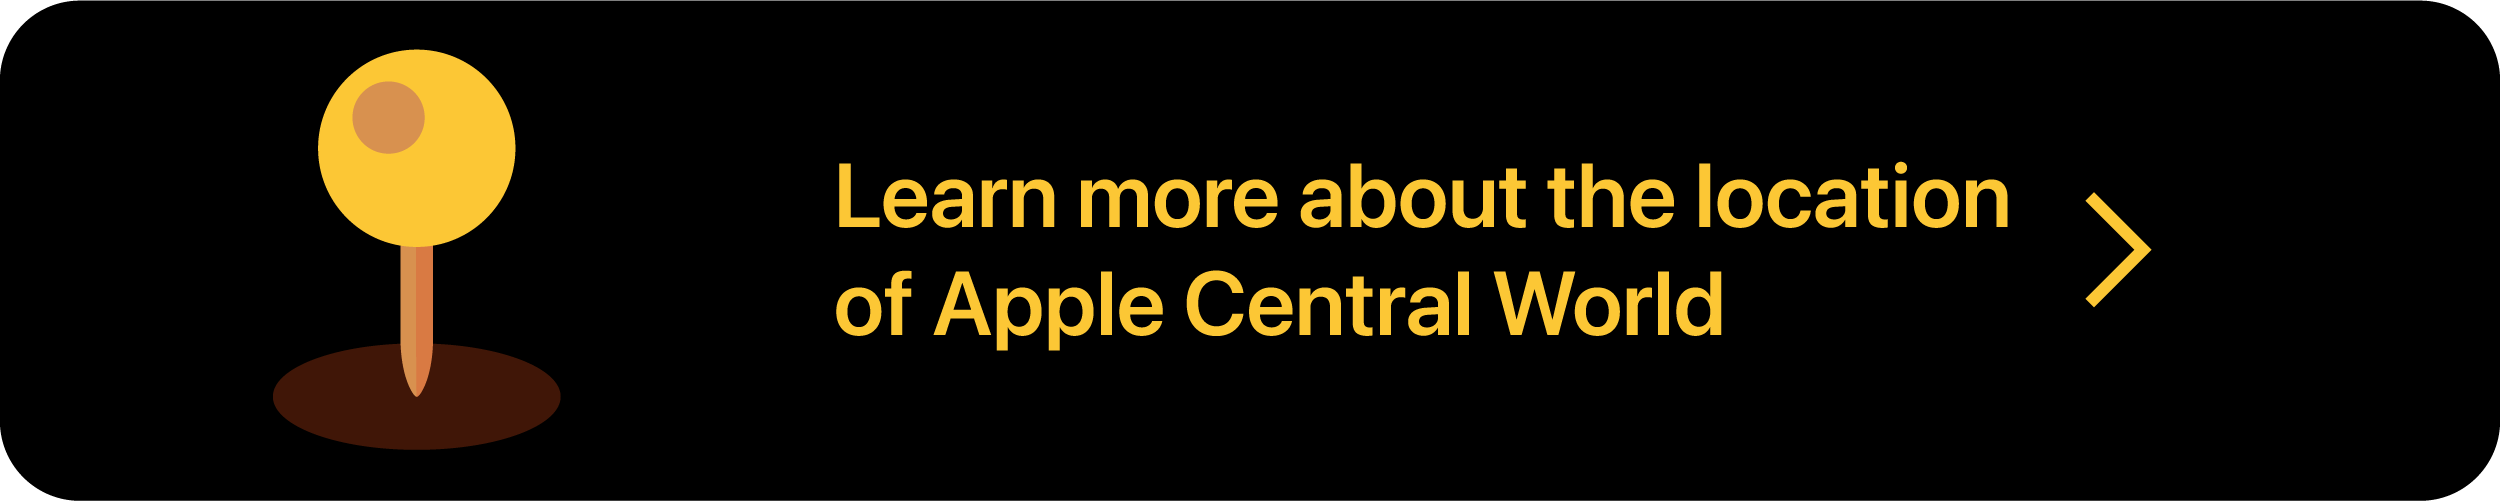 Button: Learn more about the location of Apple Central World